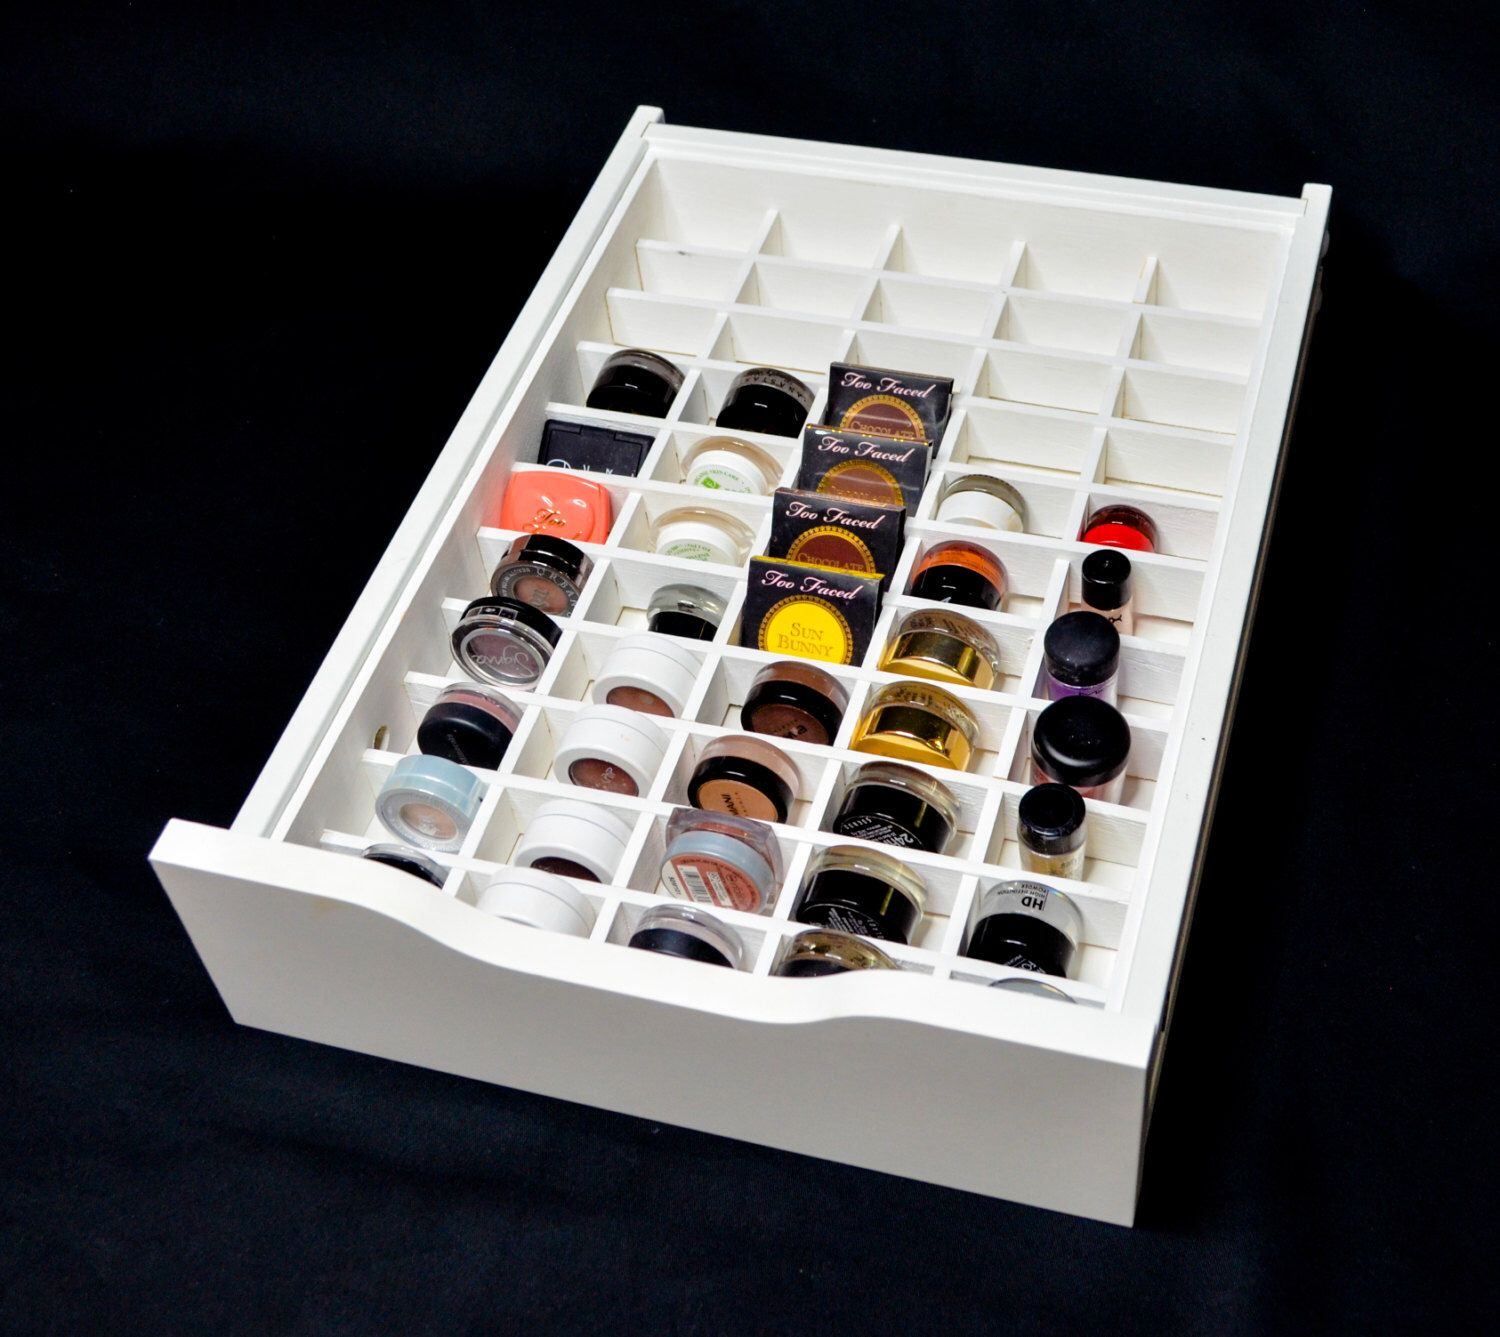 Alex 9 Eyeshadow Organizer - Makeup Organizer - Alex 9 Makeup Drawer Insert  - Eyeshadow Storage